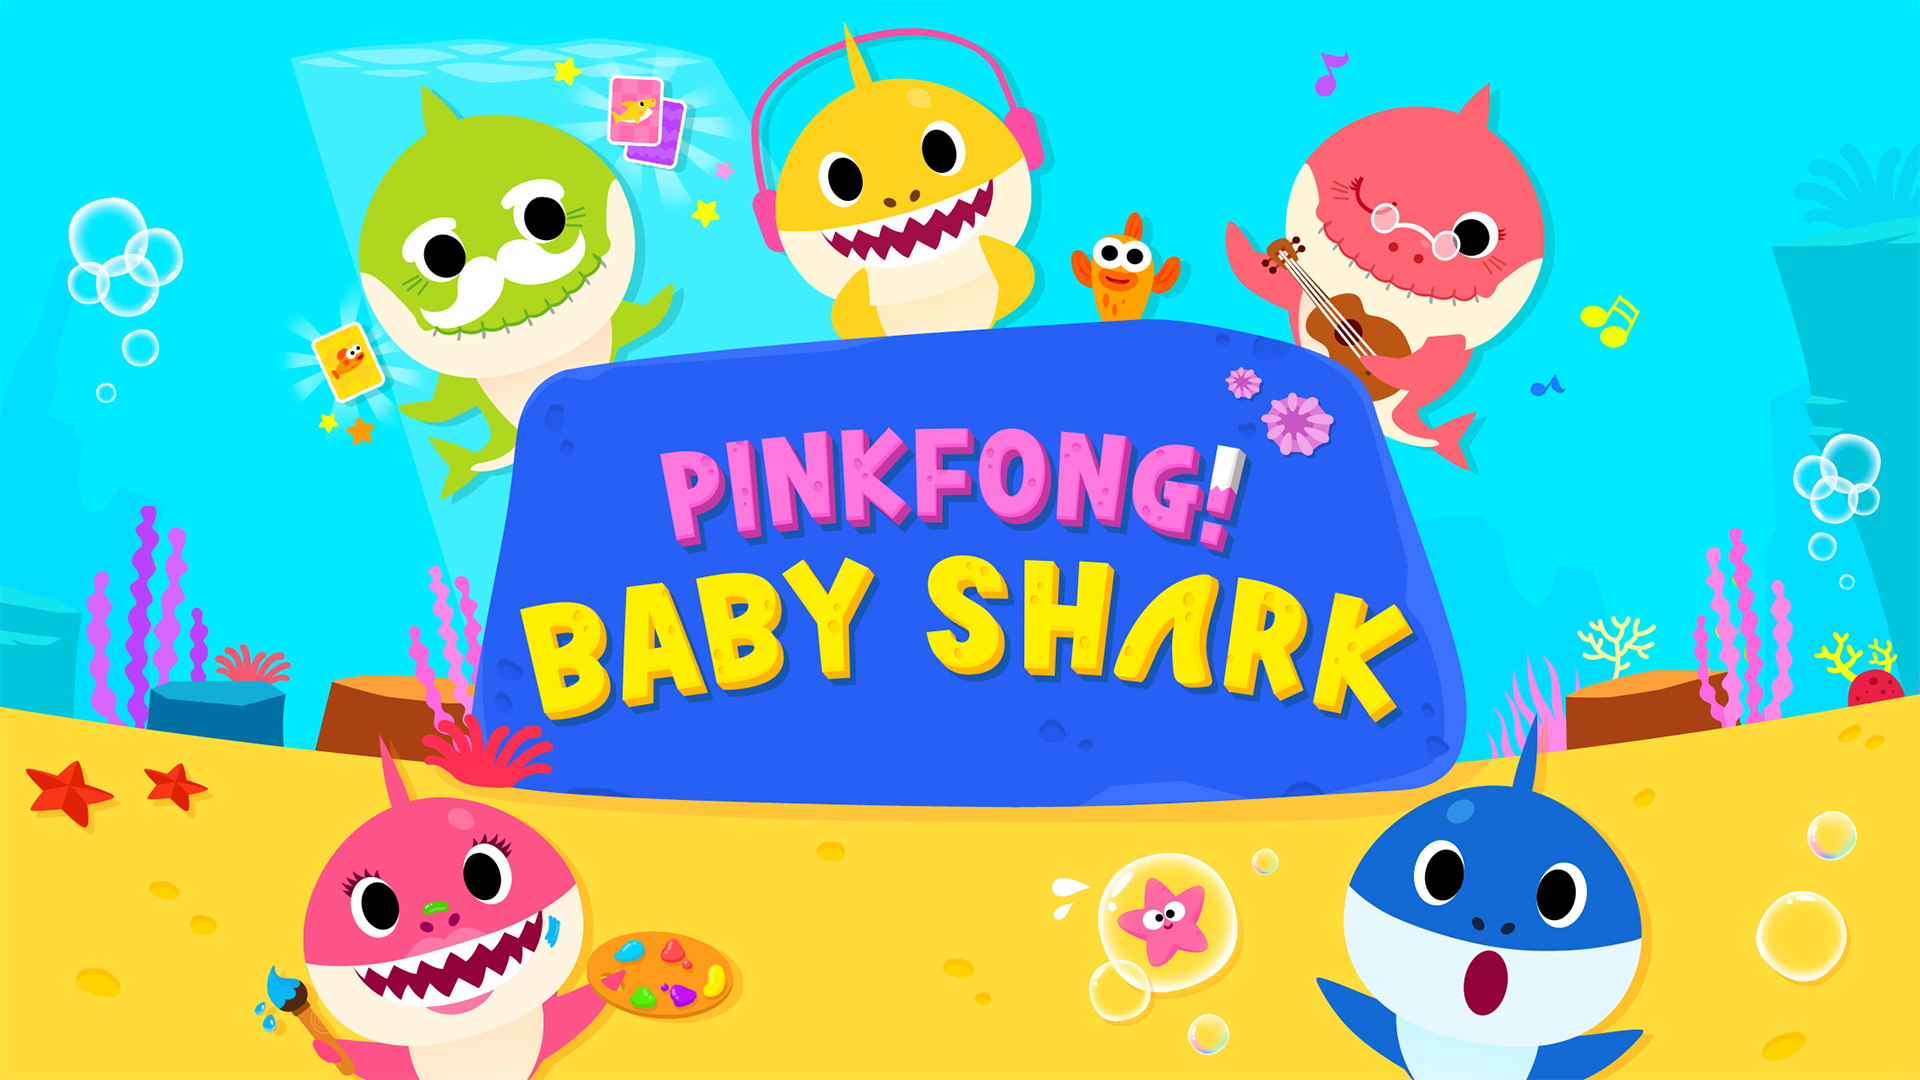 PINKFONG Baby Shark: Amazon.in: Appstore for Android